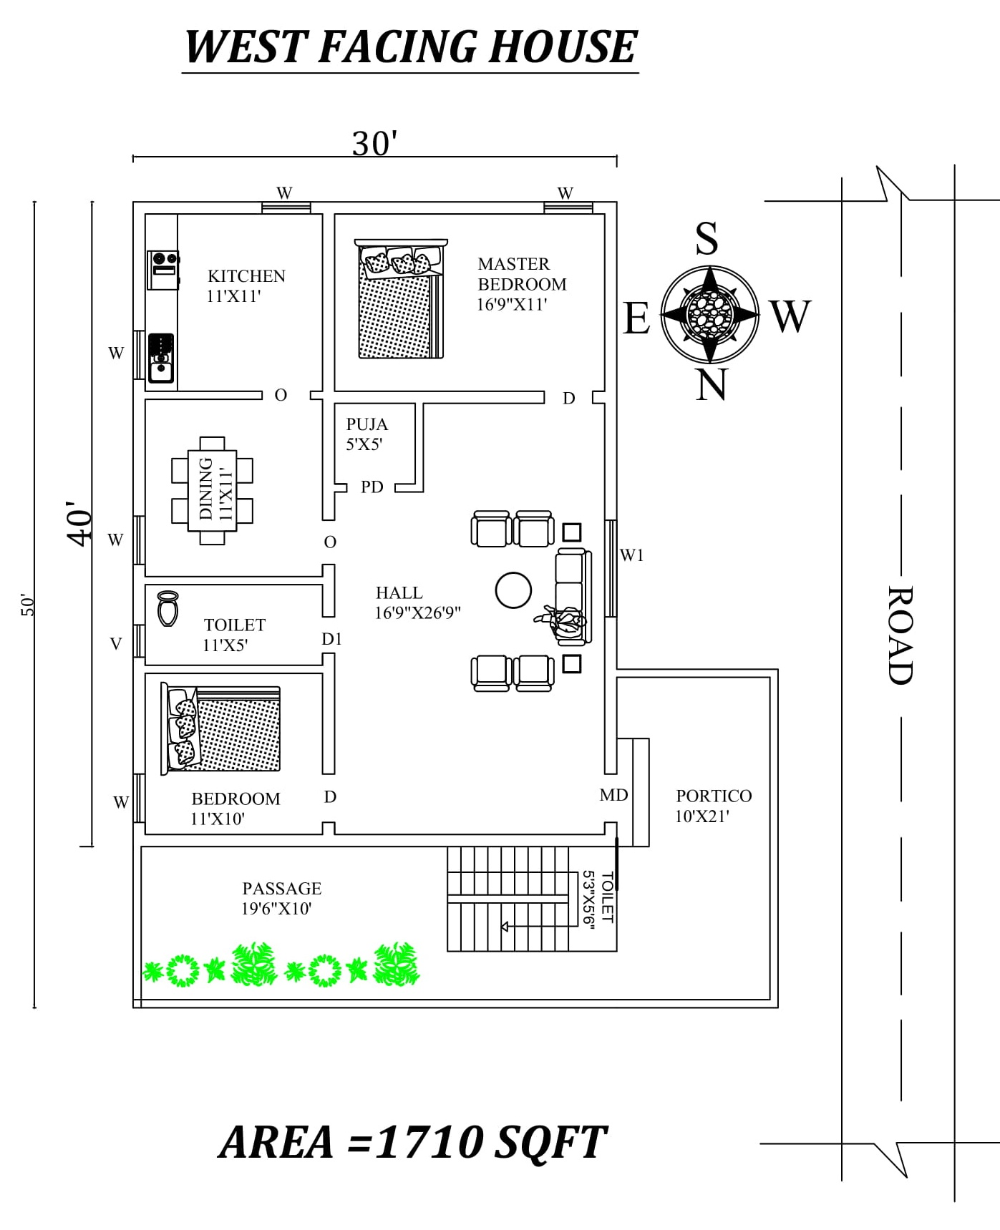 30 X50 Marvelous 2bhk West Facing House Plan As Per Vastu Shastra Autocad Dwg And Pdf File West Facing House Little House Plans Beautiful House Plans